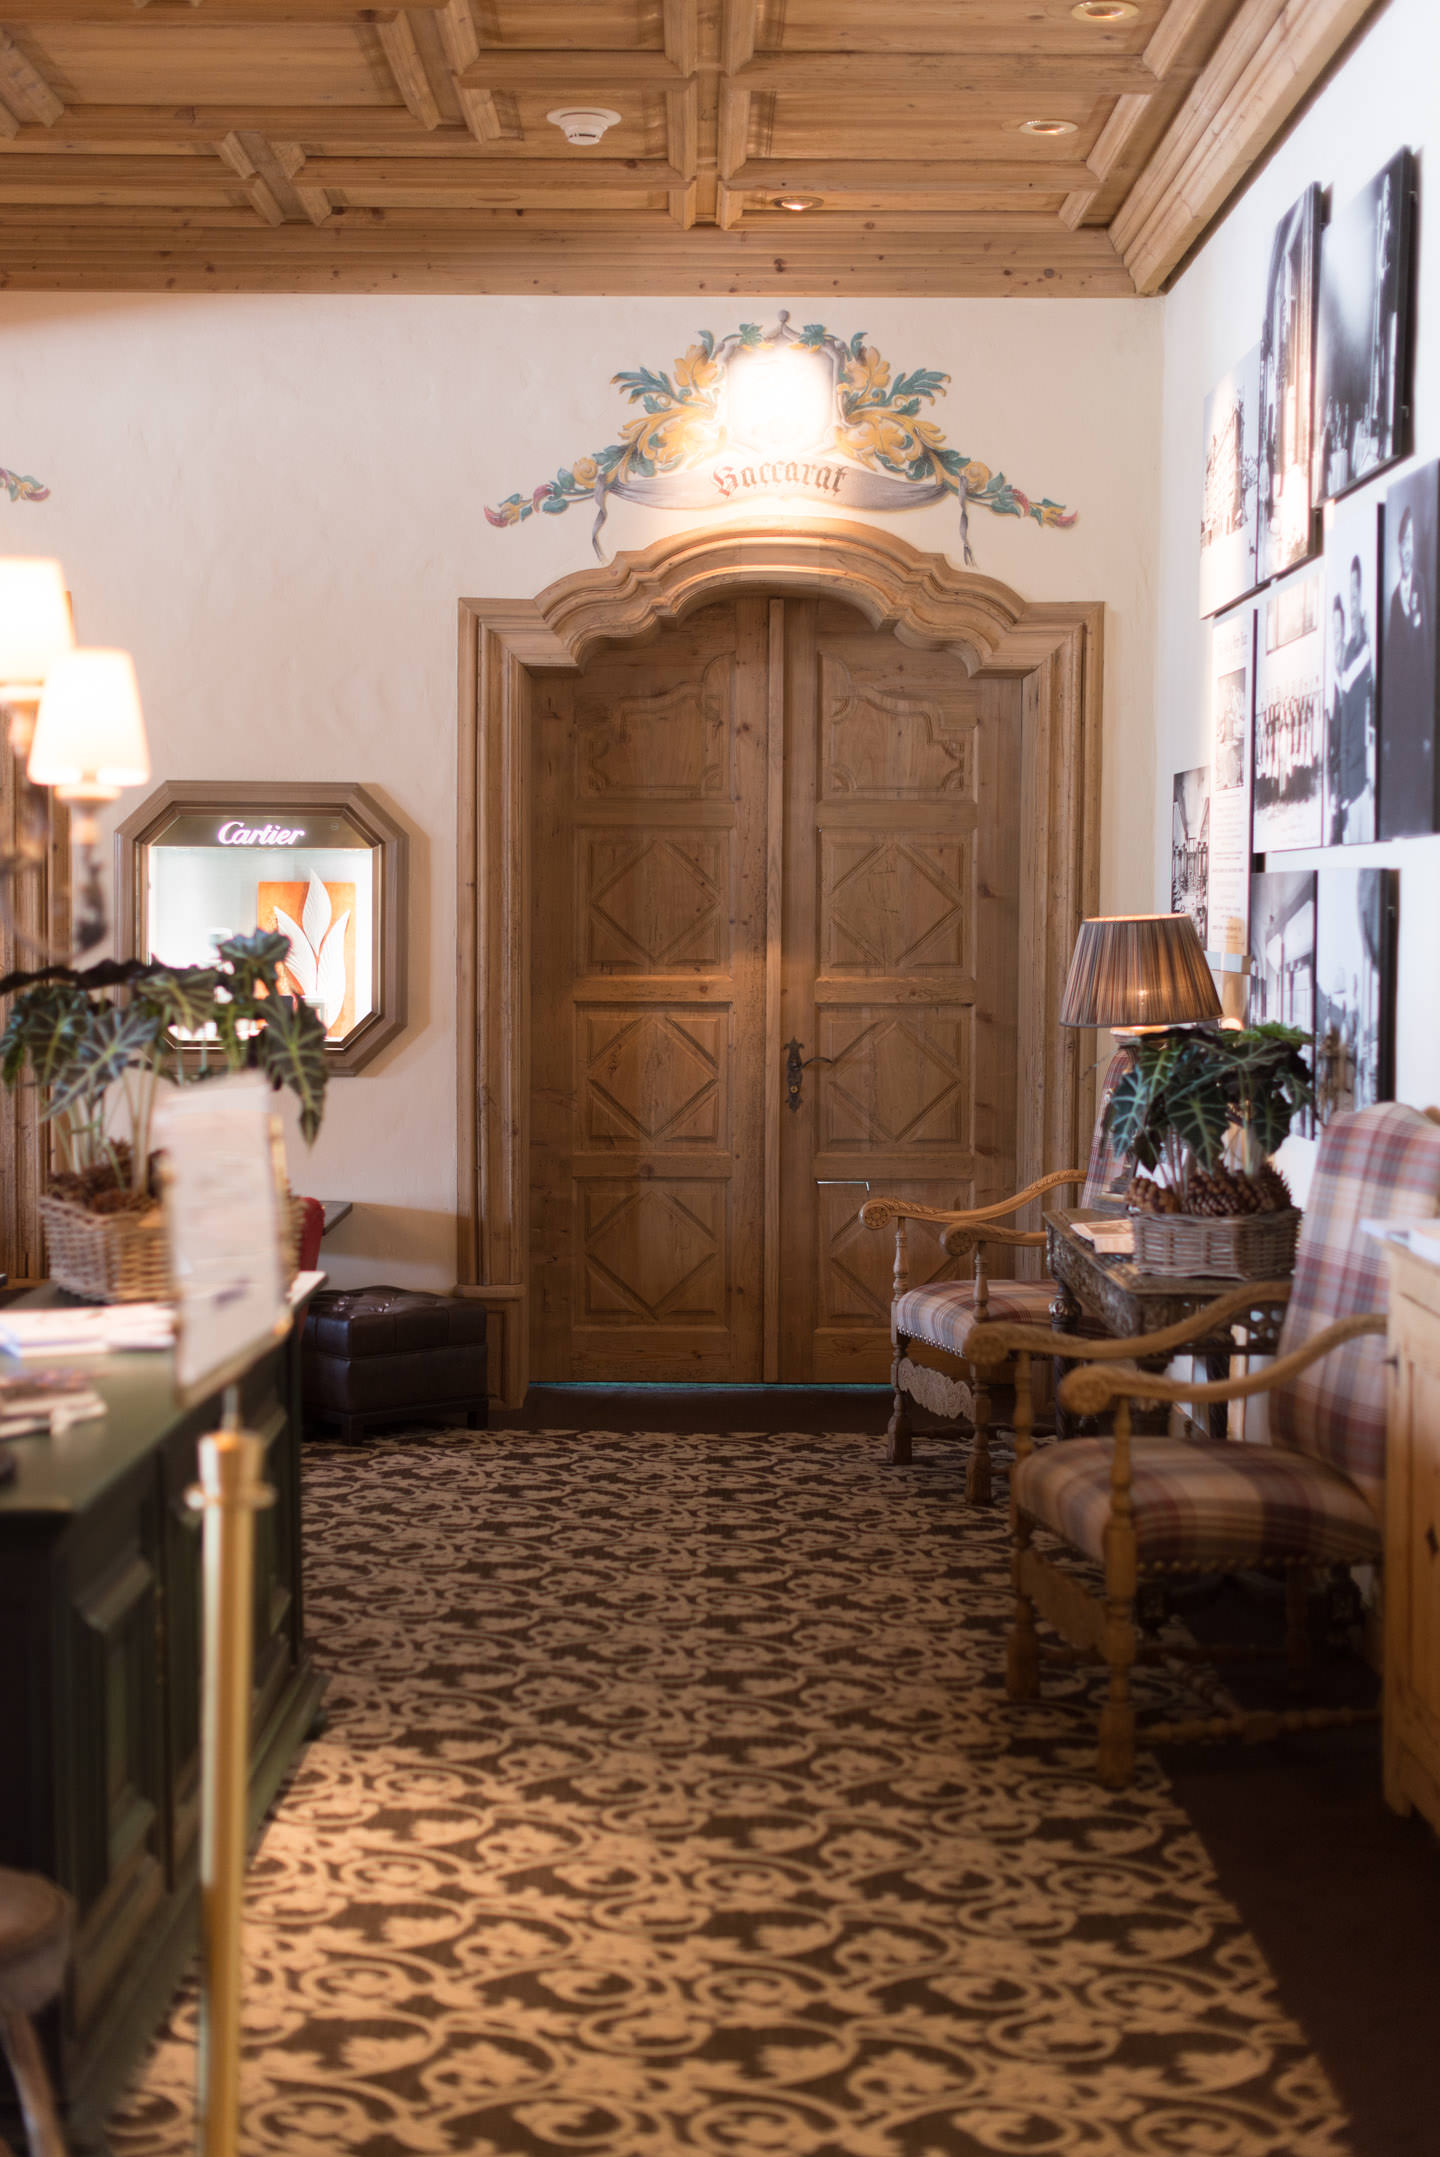 Blog-Mode-And-The-City-Lifestyle-Parenthese-Enchantee-Gstaad-Suisse-Gstaad-Palace-5